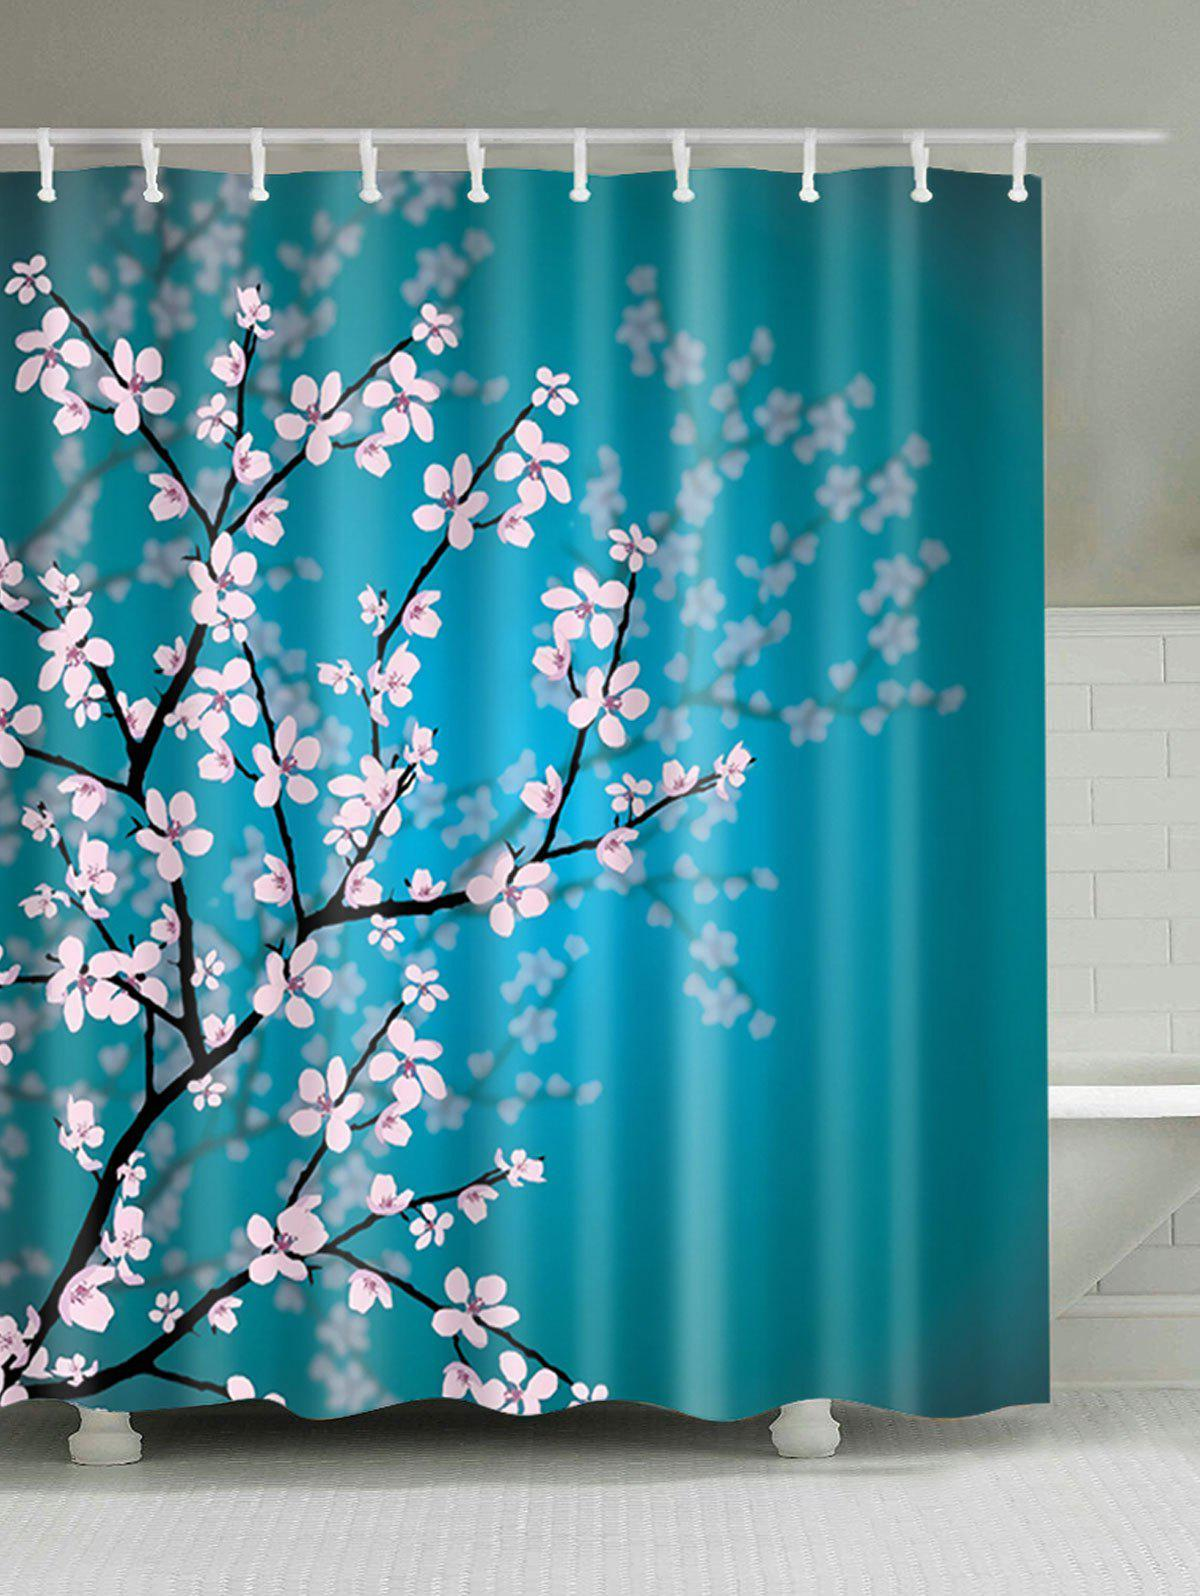 Lake Blue W59 Inch * L71 Inch Plum Blossom Mouldproof Shower Curtain ...